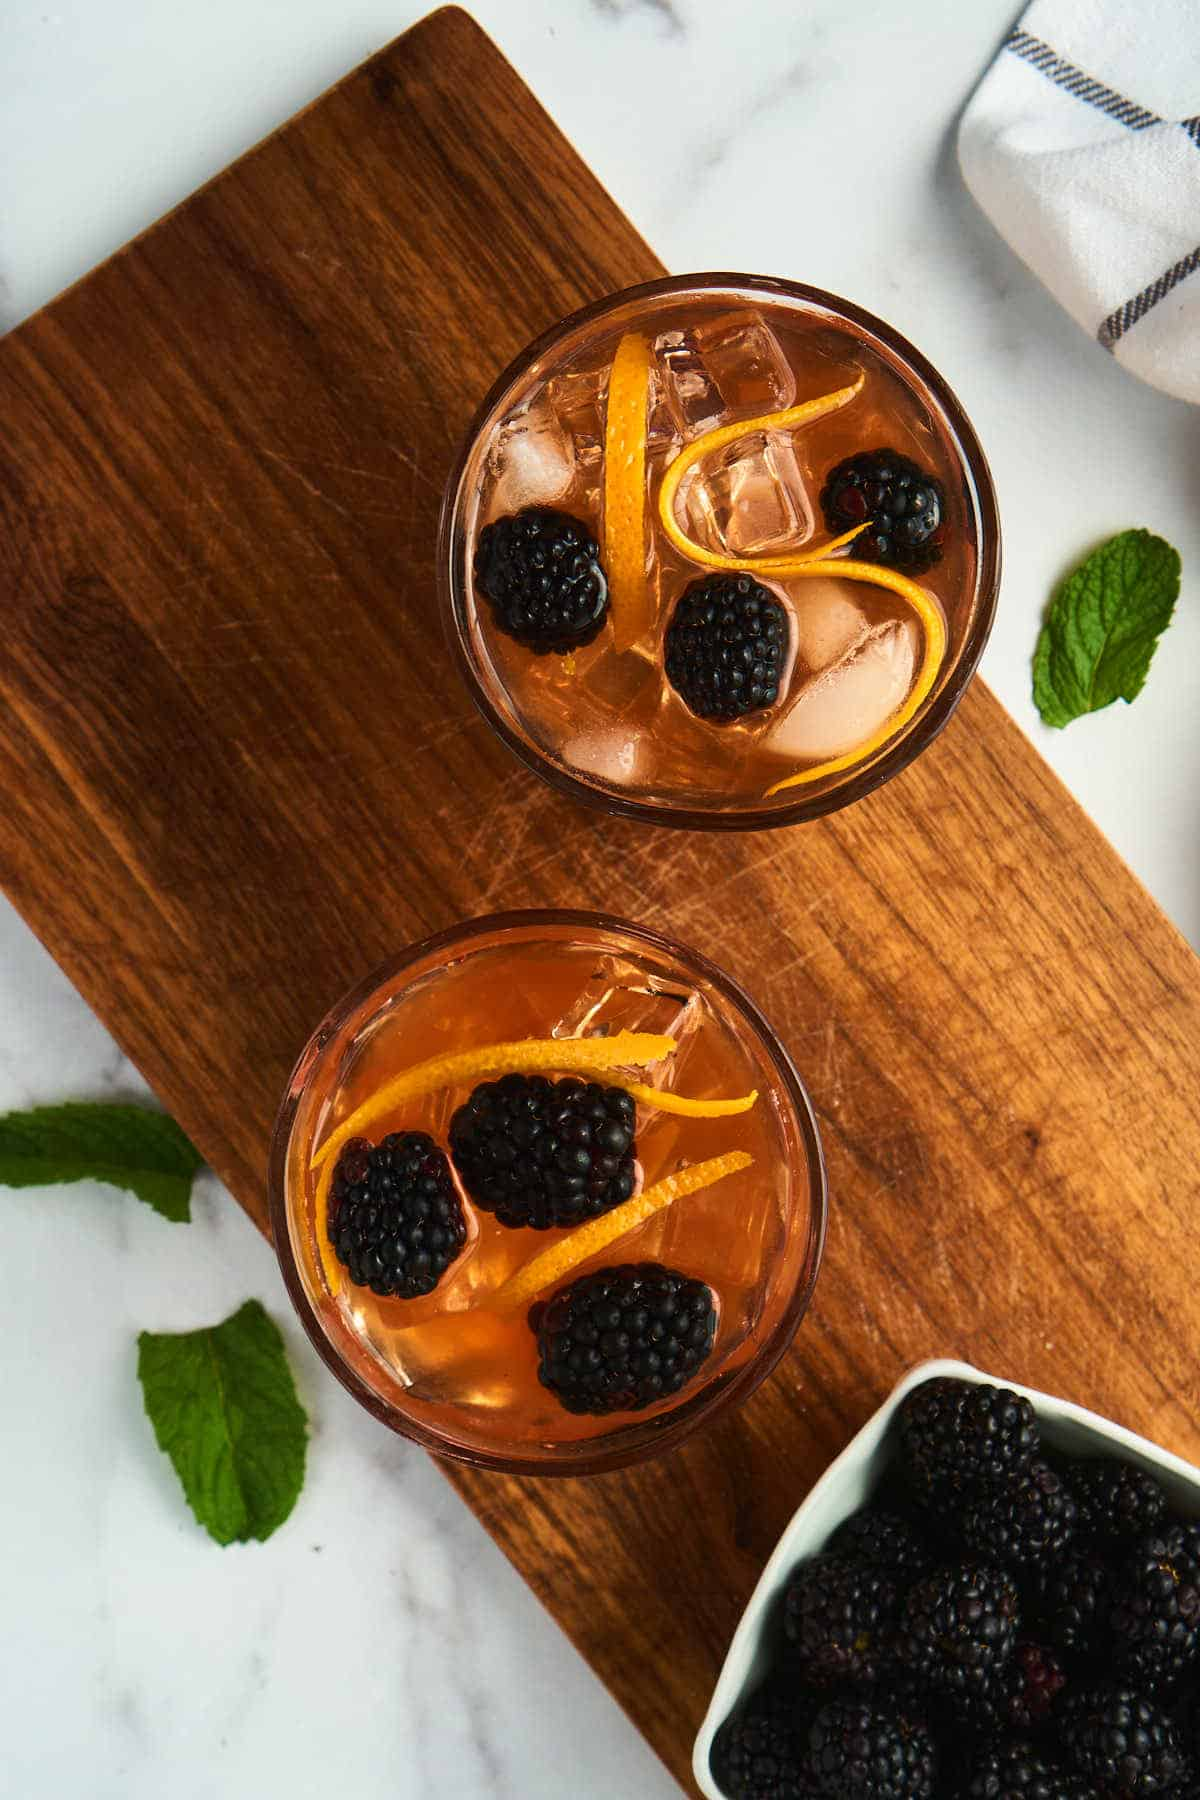 overhead view show blackberry and orange peel garnish in old fashioned glass